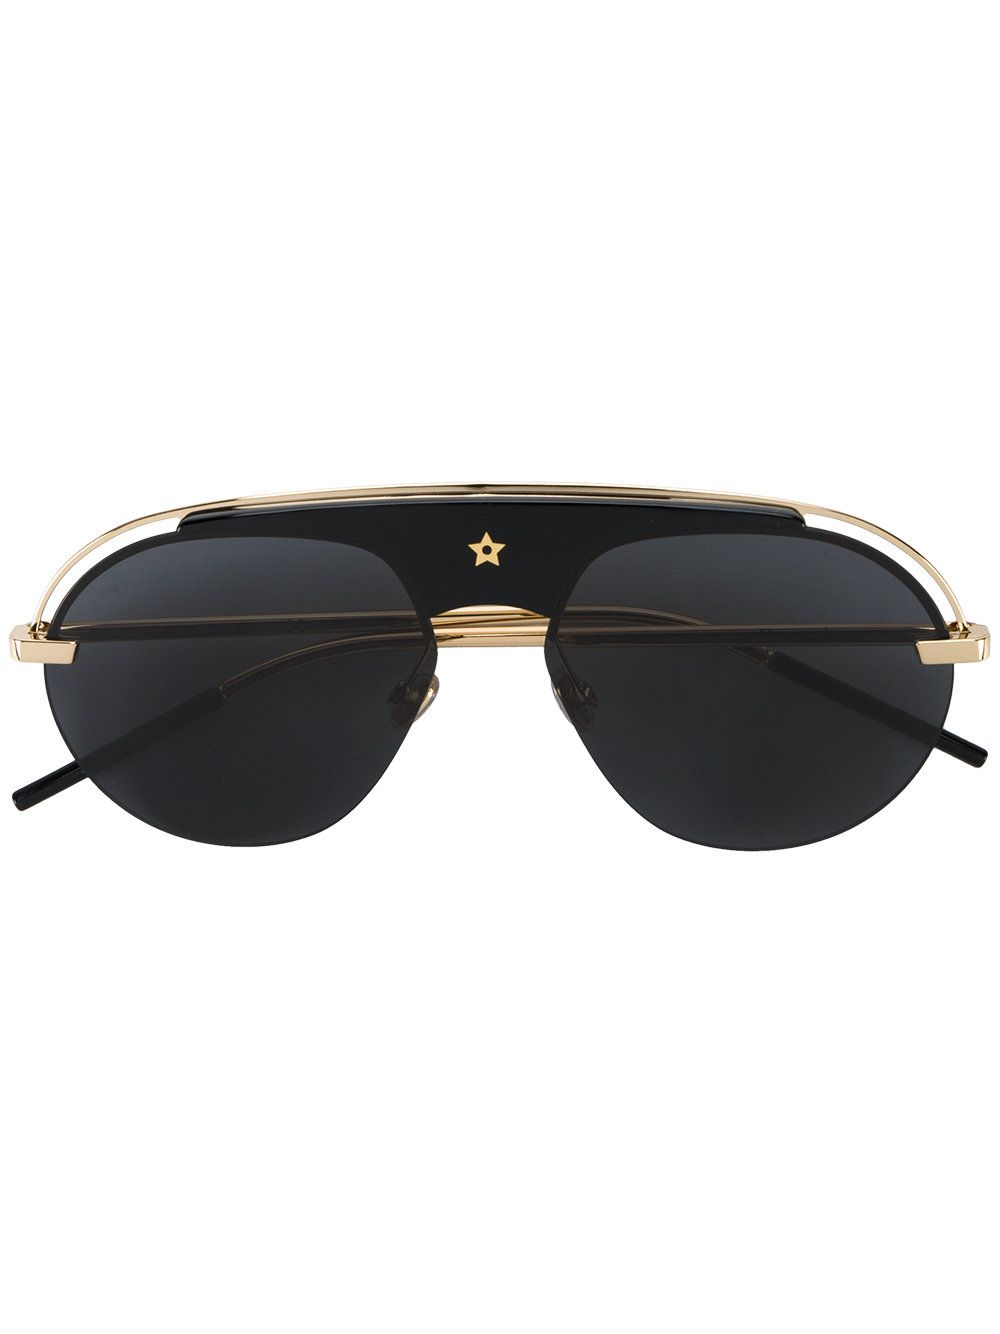 e74b618fc7cf3 Dior Eyewear Dio(r)evolution sunglasses